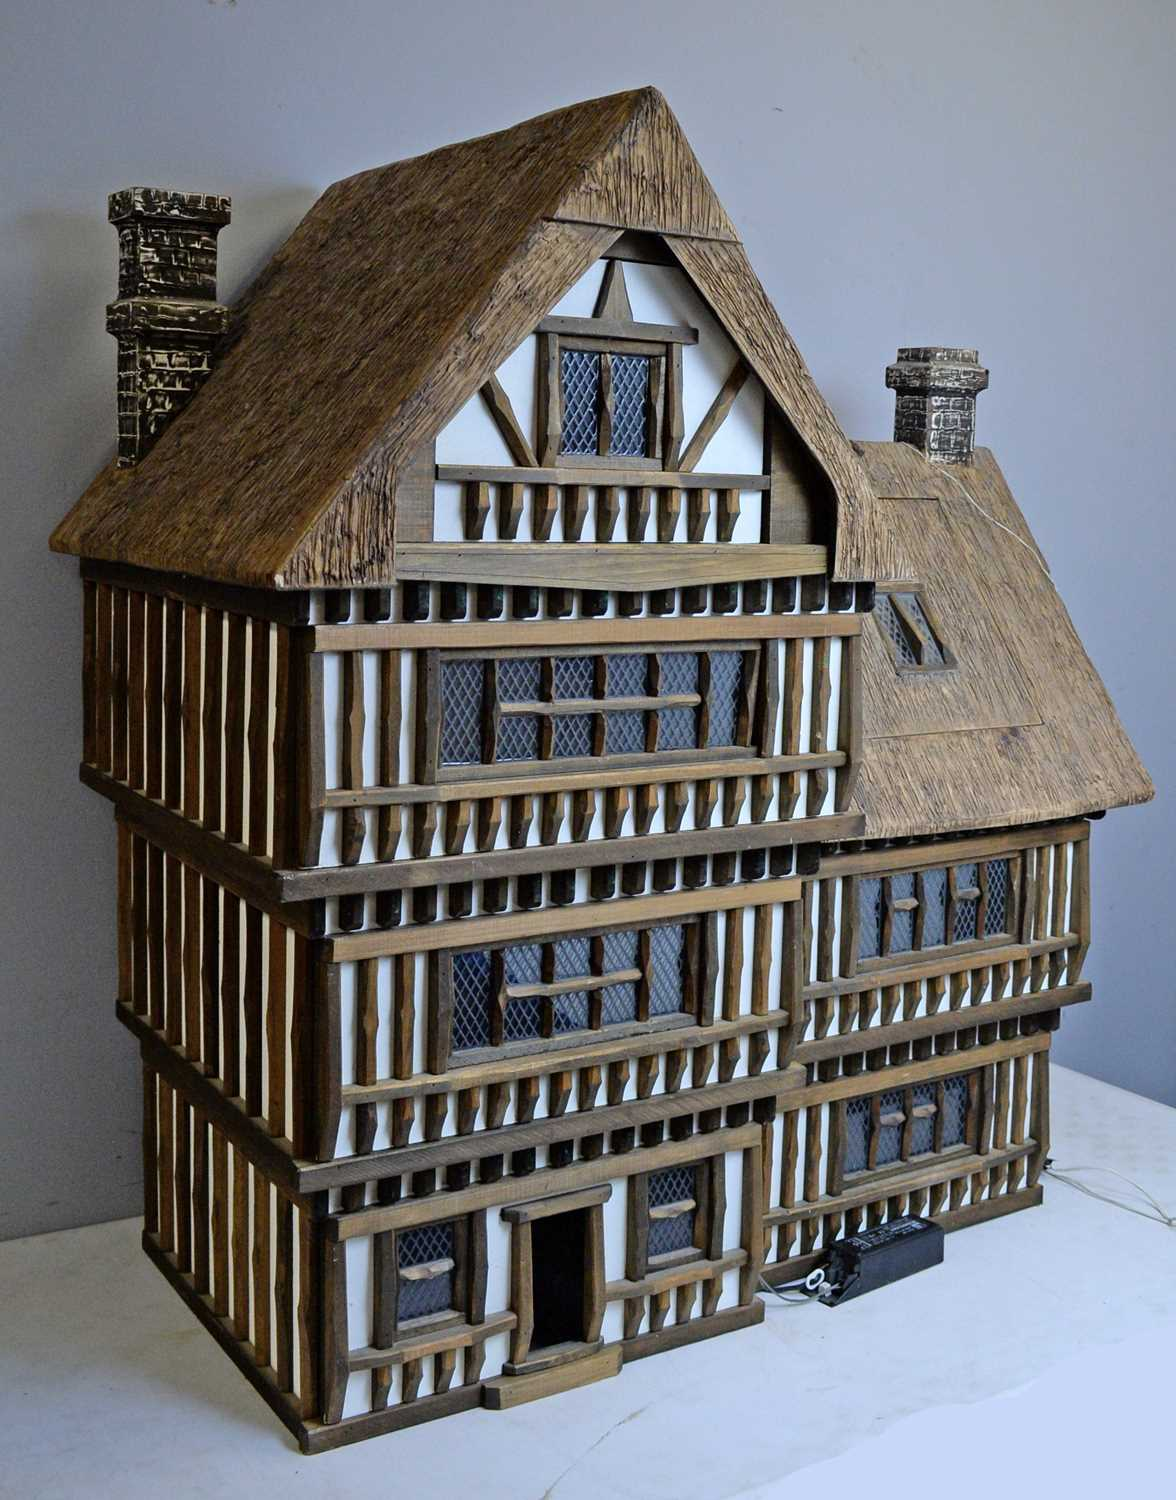 A Tudor-style doll's house by Robert Stubbs - Image 2 of 3